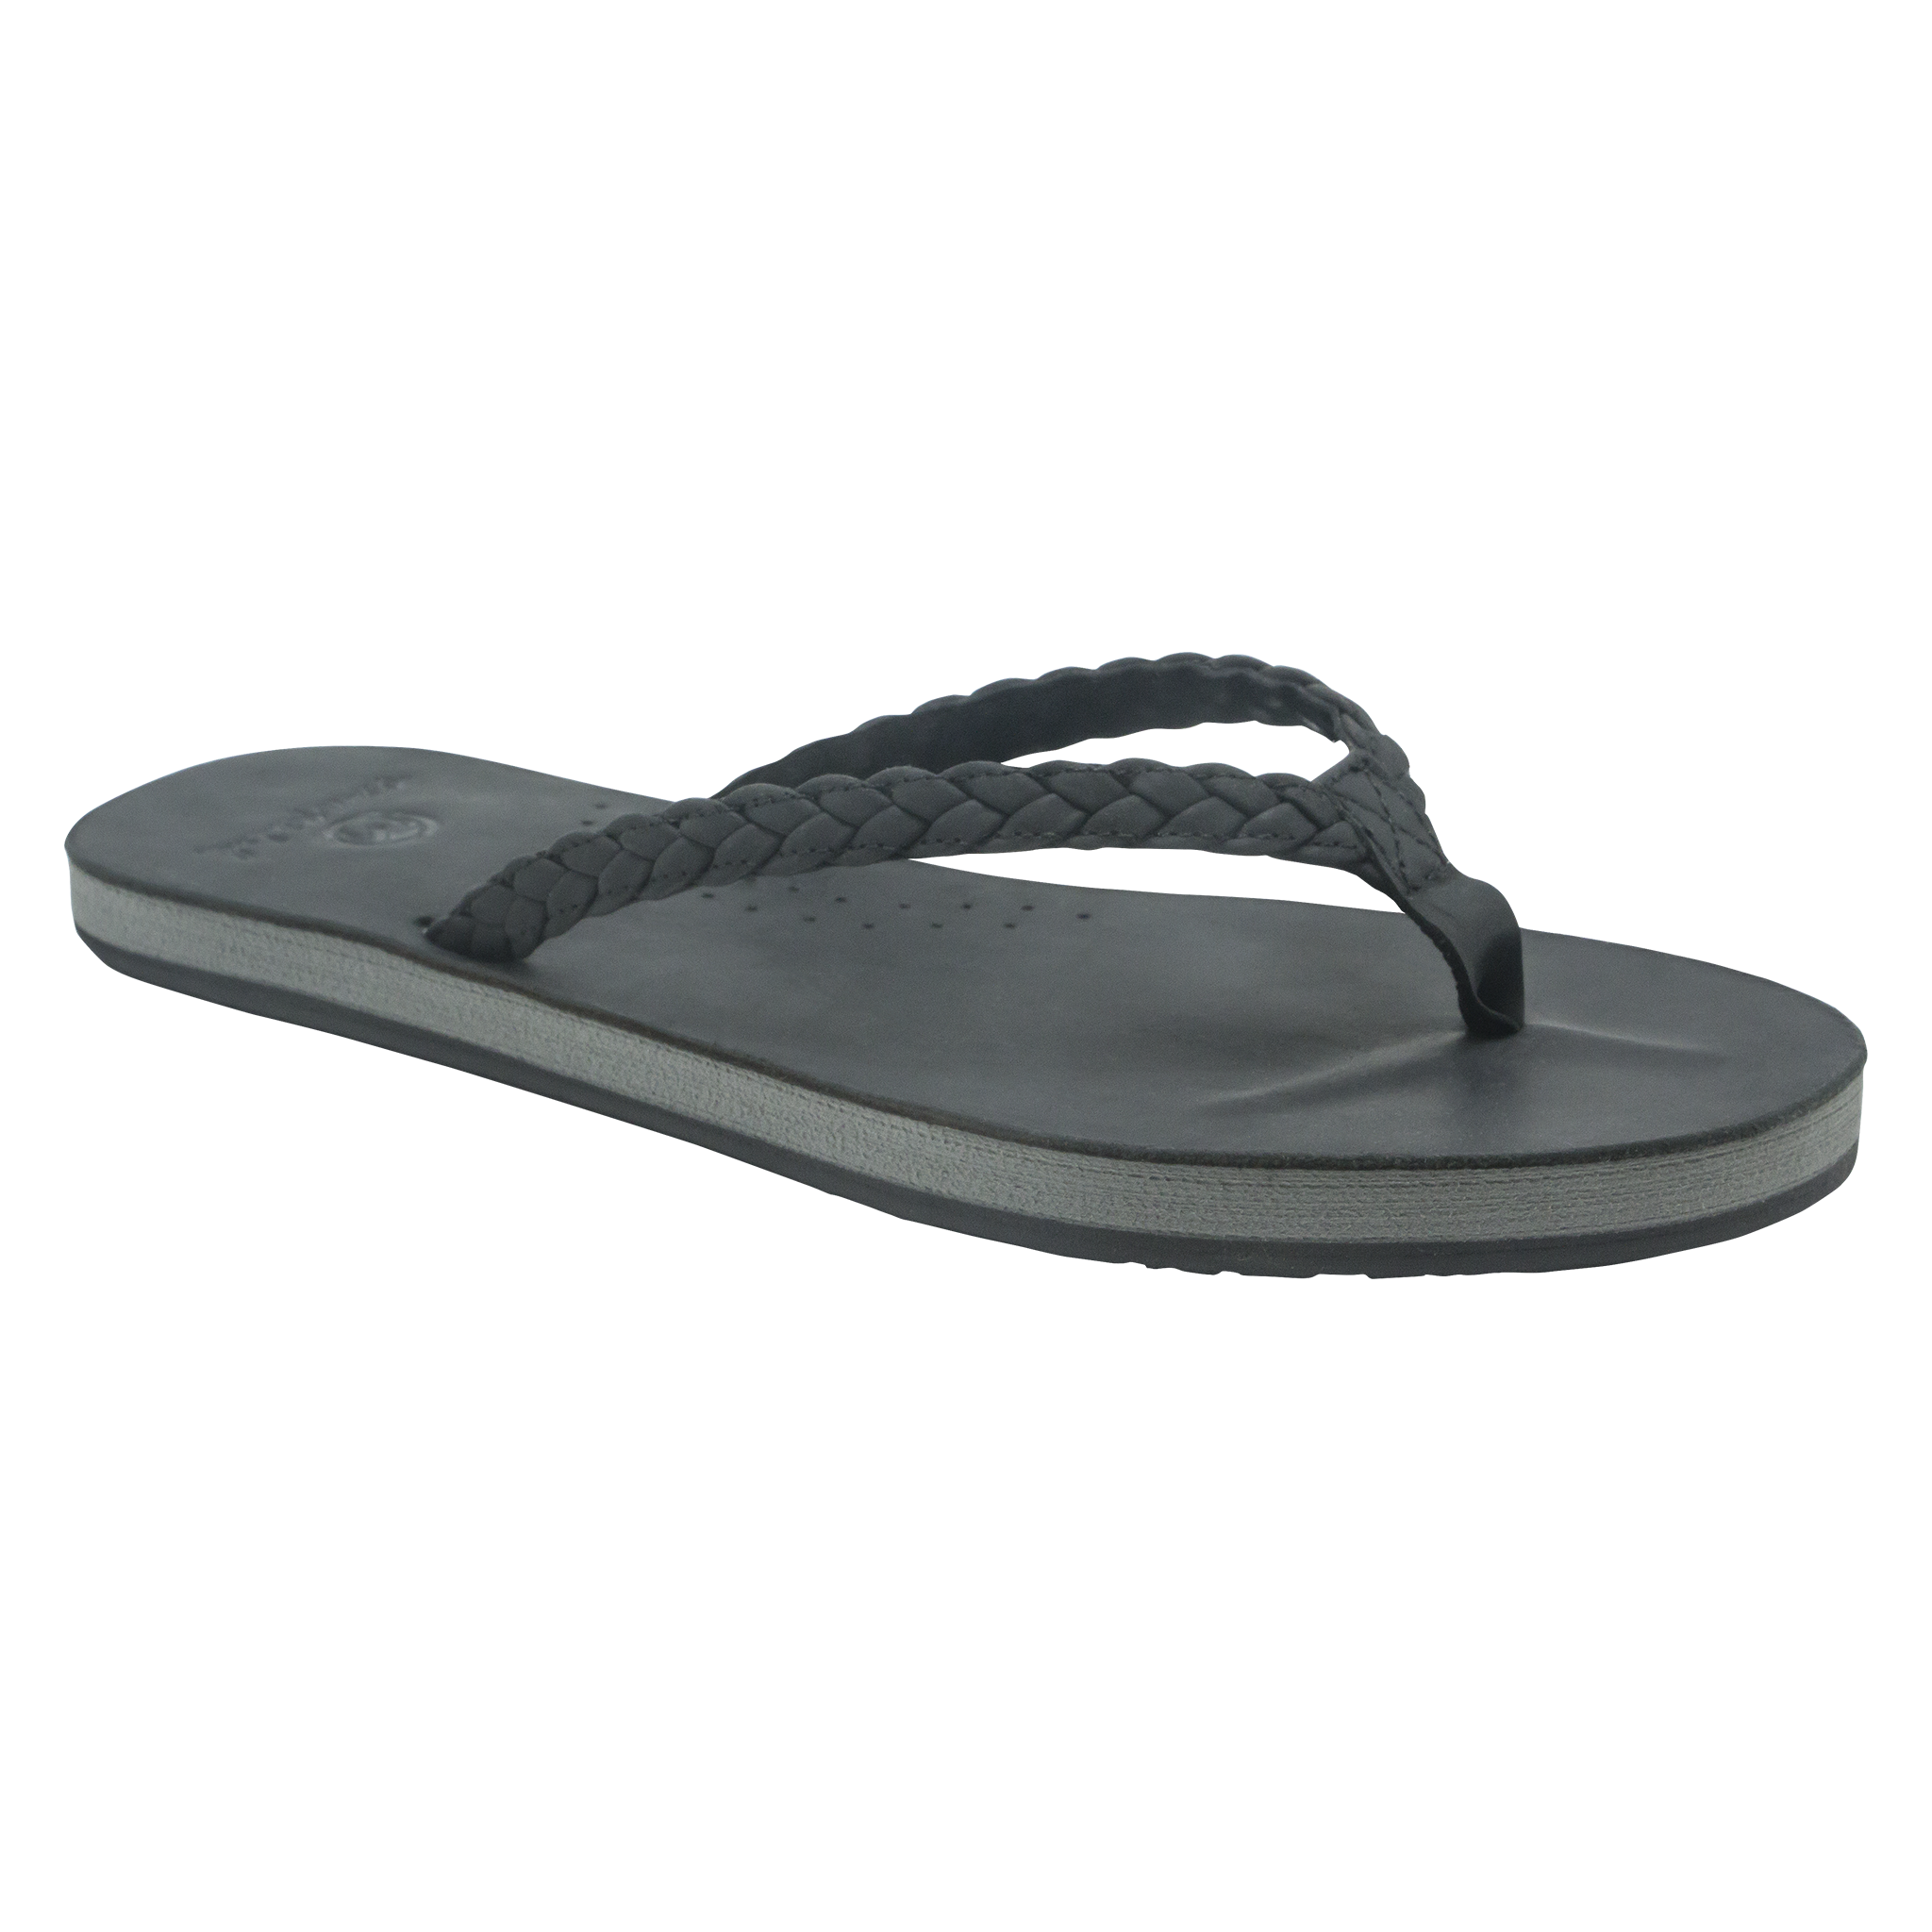 The Laguna - Women's Sandal